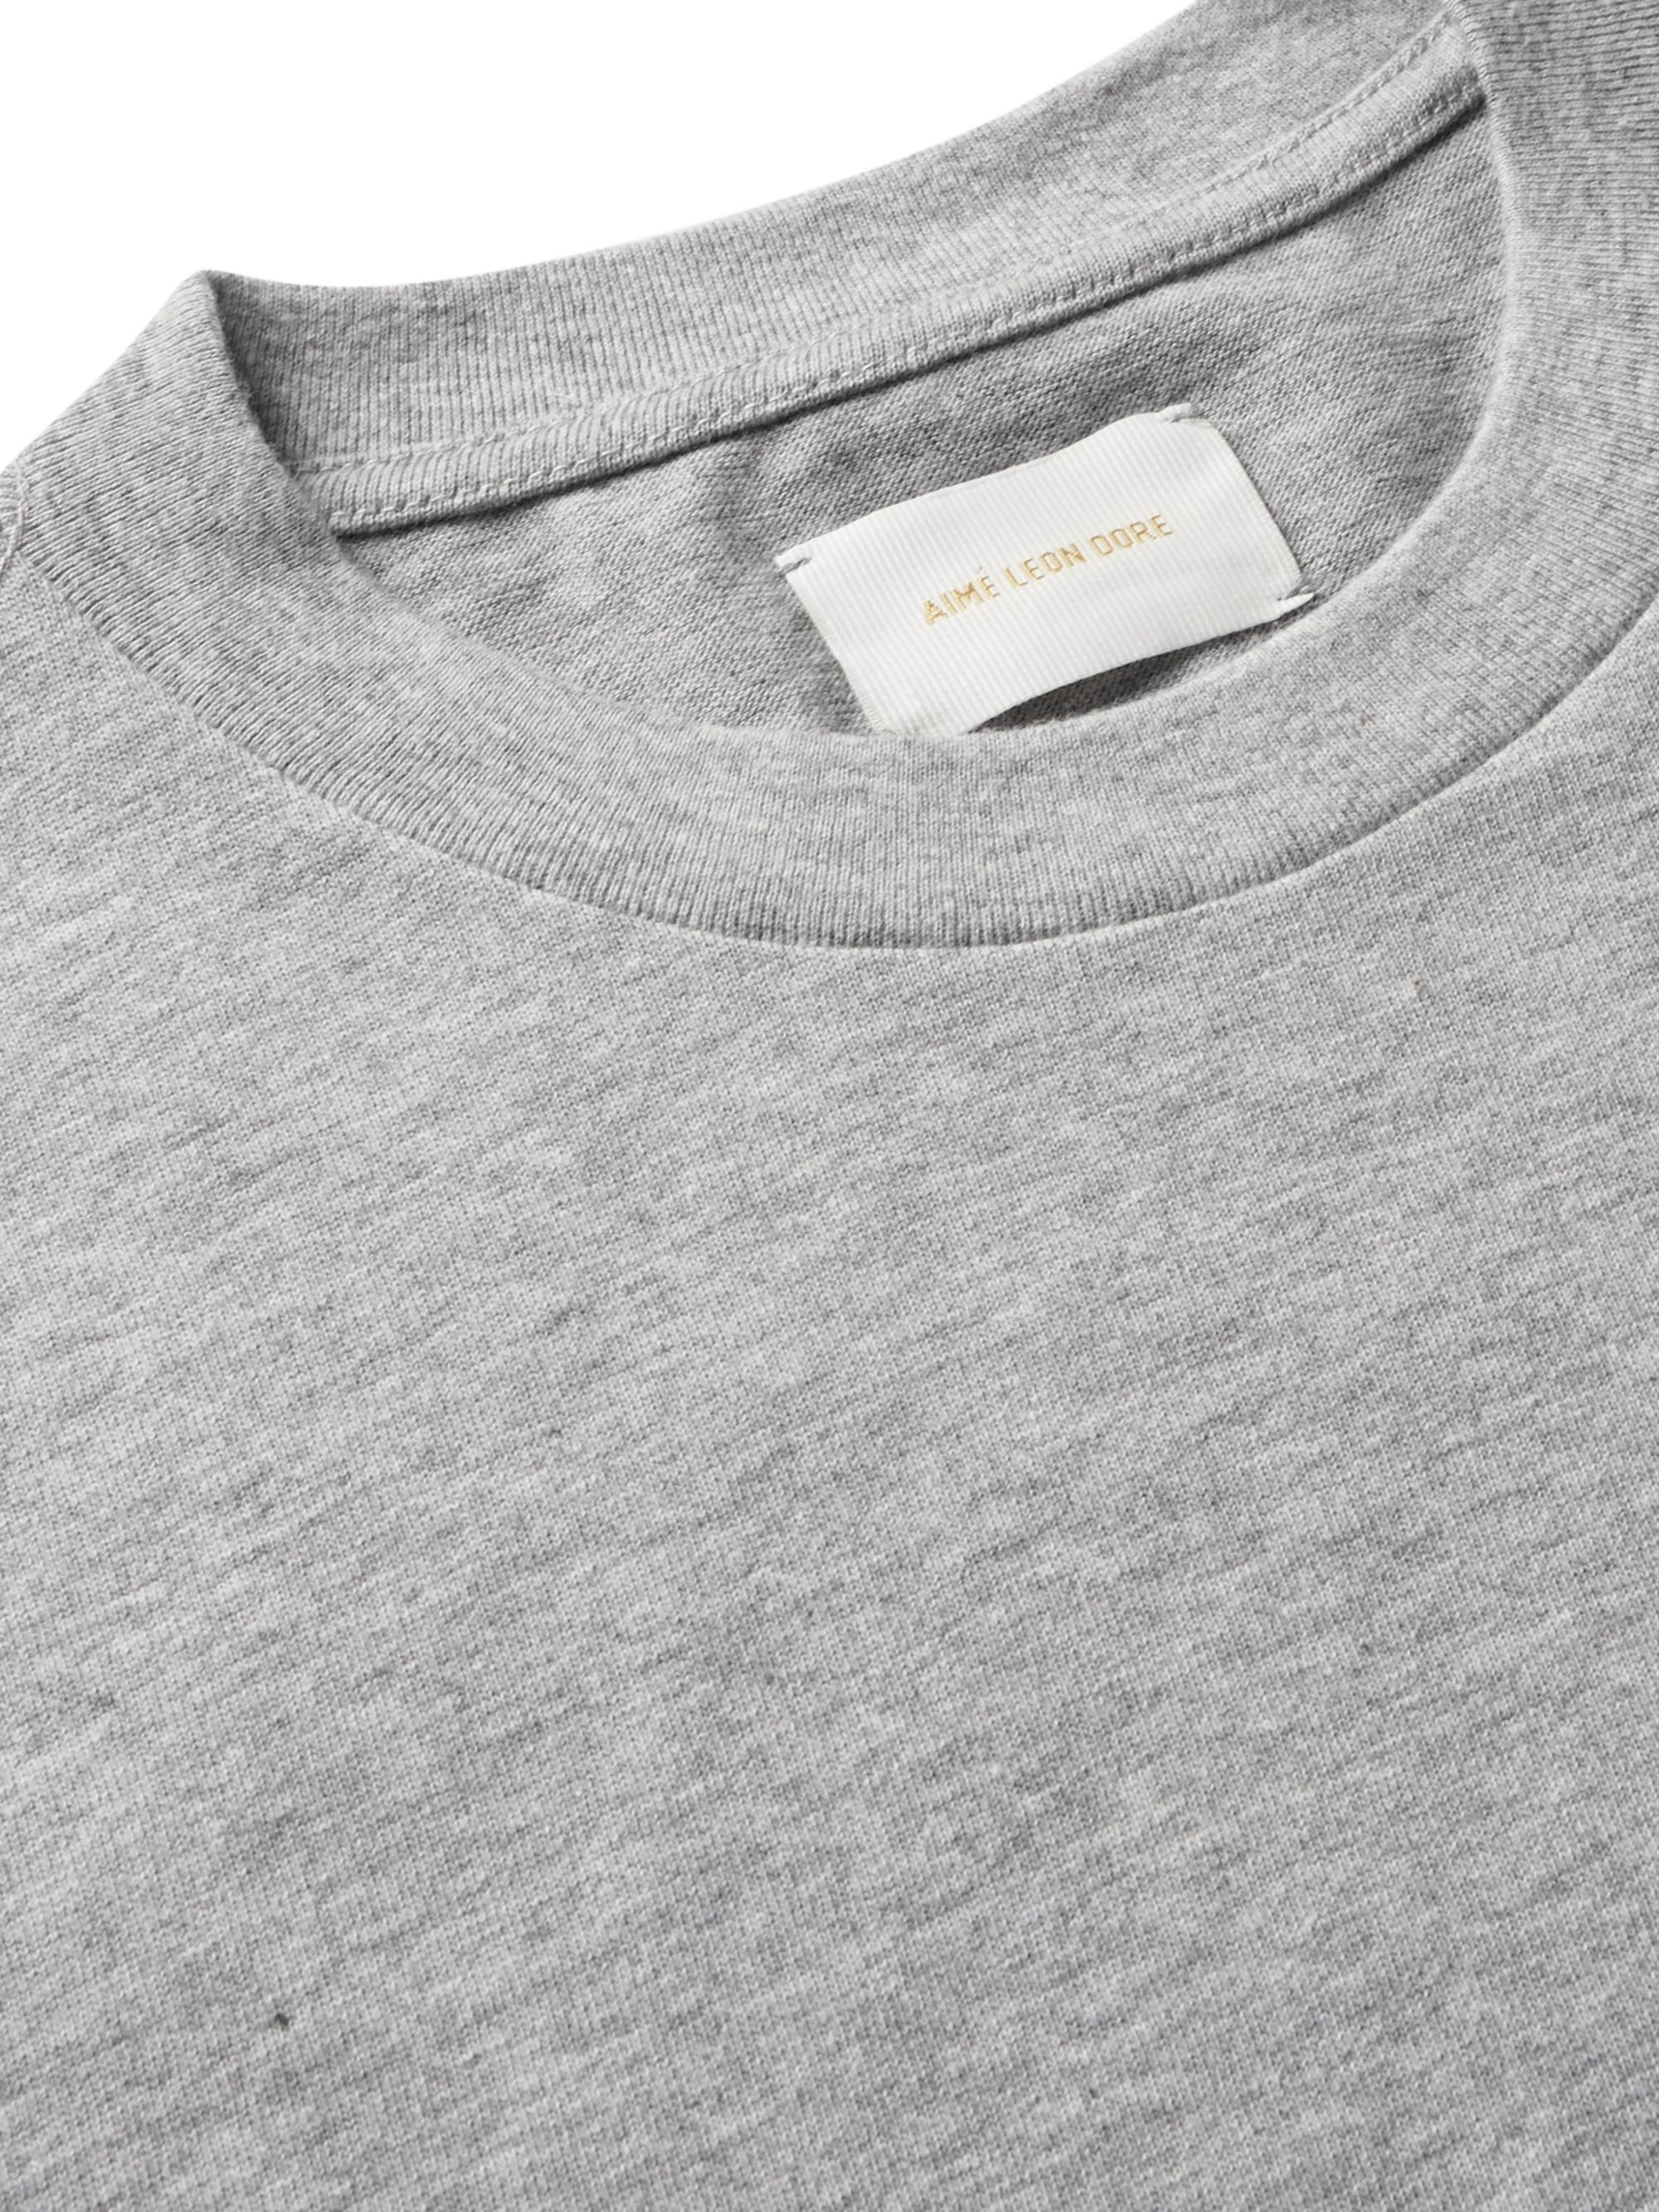 Aimé Leon Dore Logo-Embroidered Mélange Cotton-Jersey T-Shirt